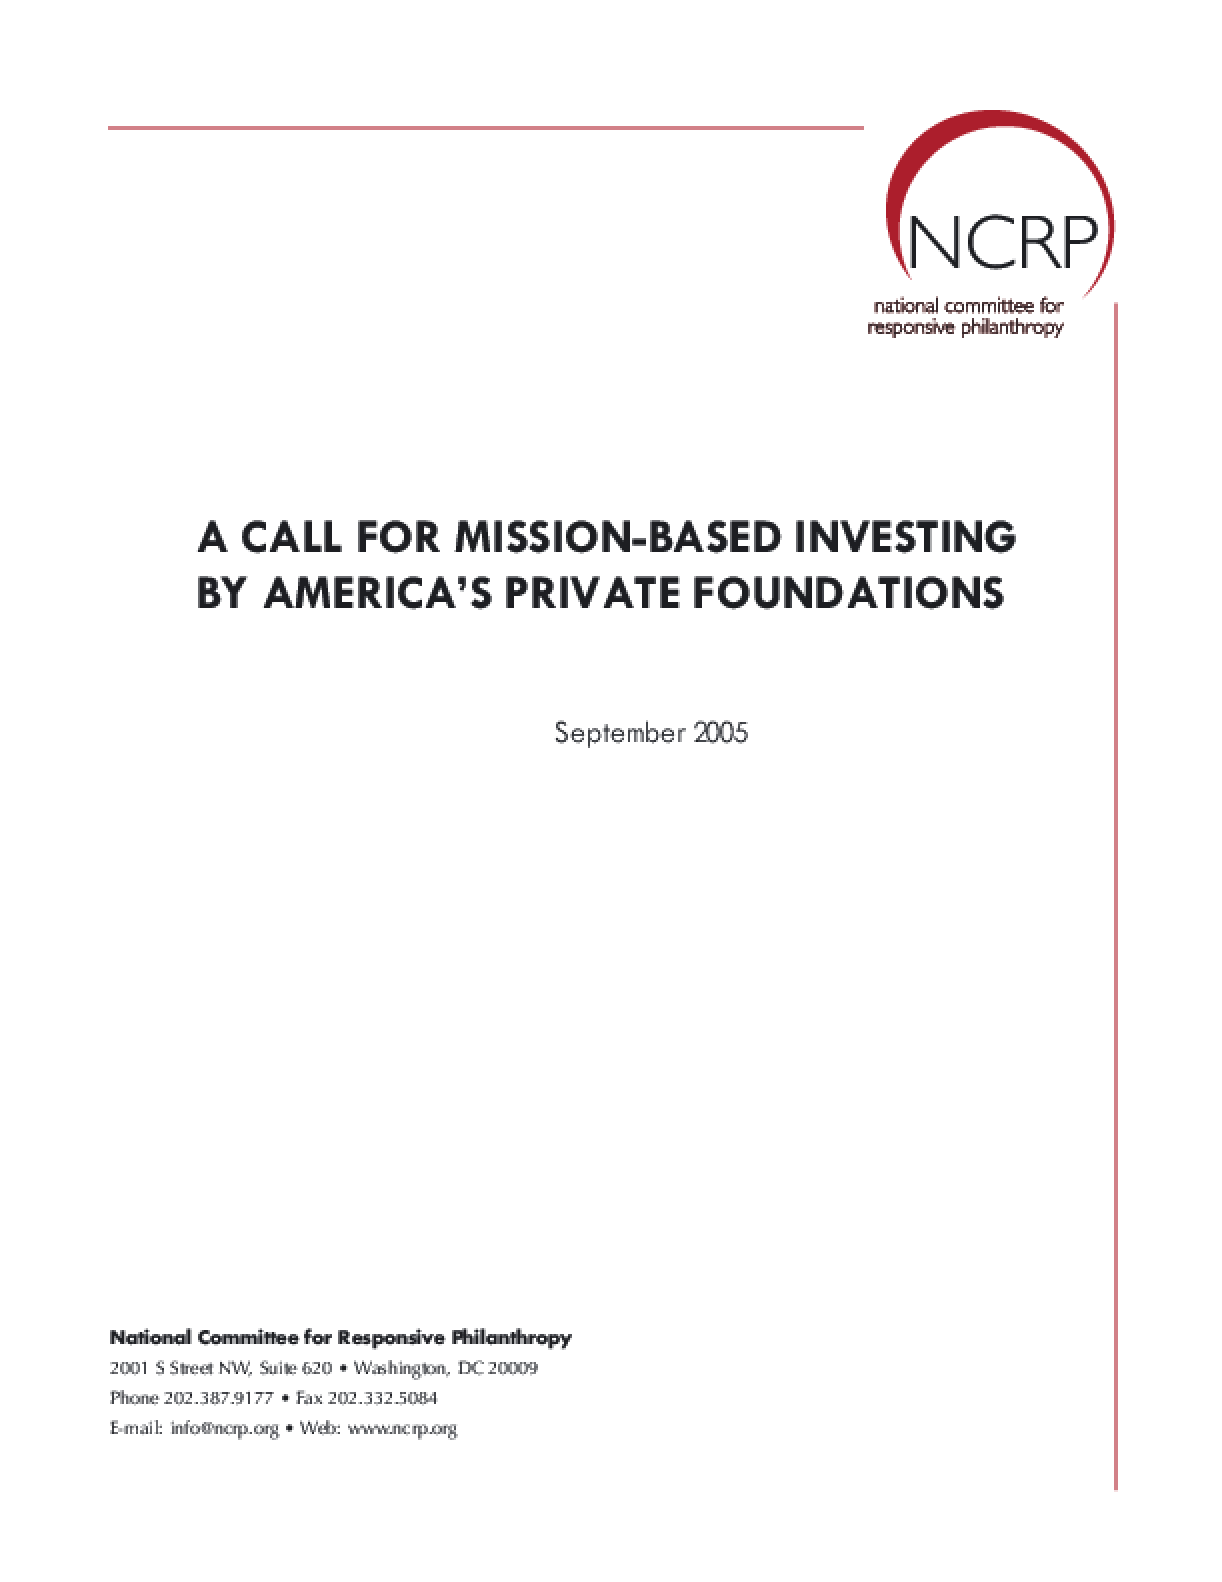 A Call for Mission-based Investing by America's Private Foundations